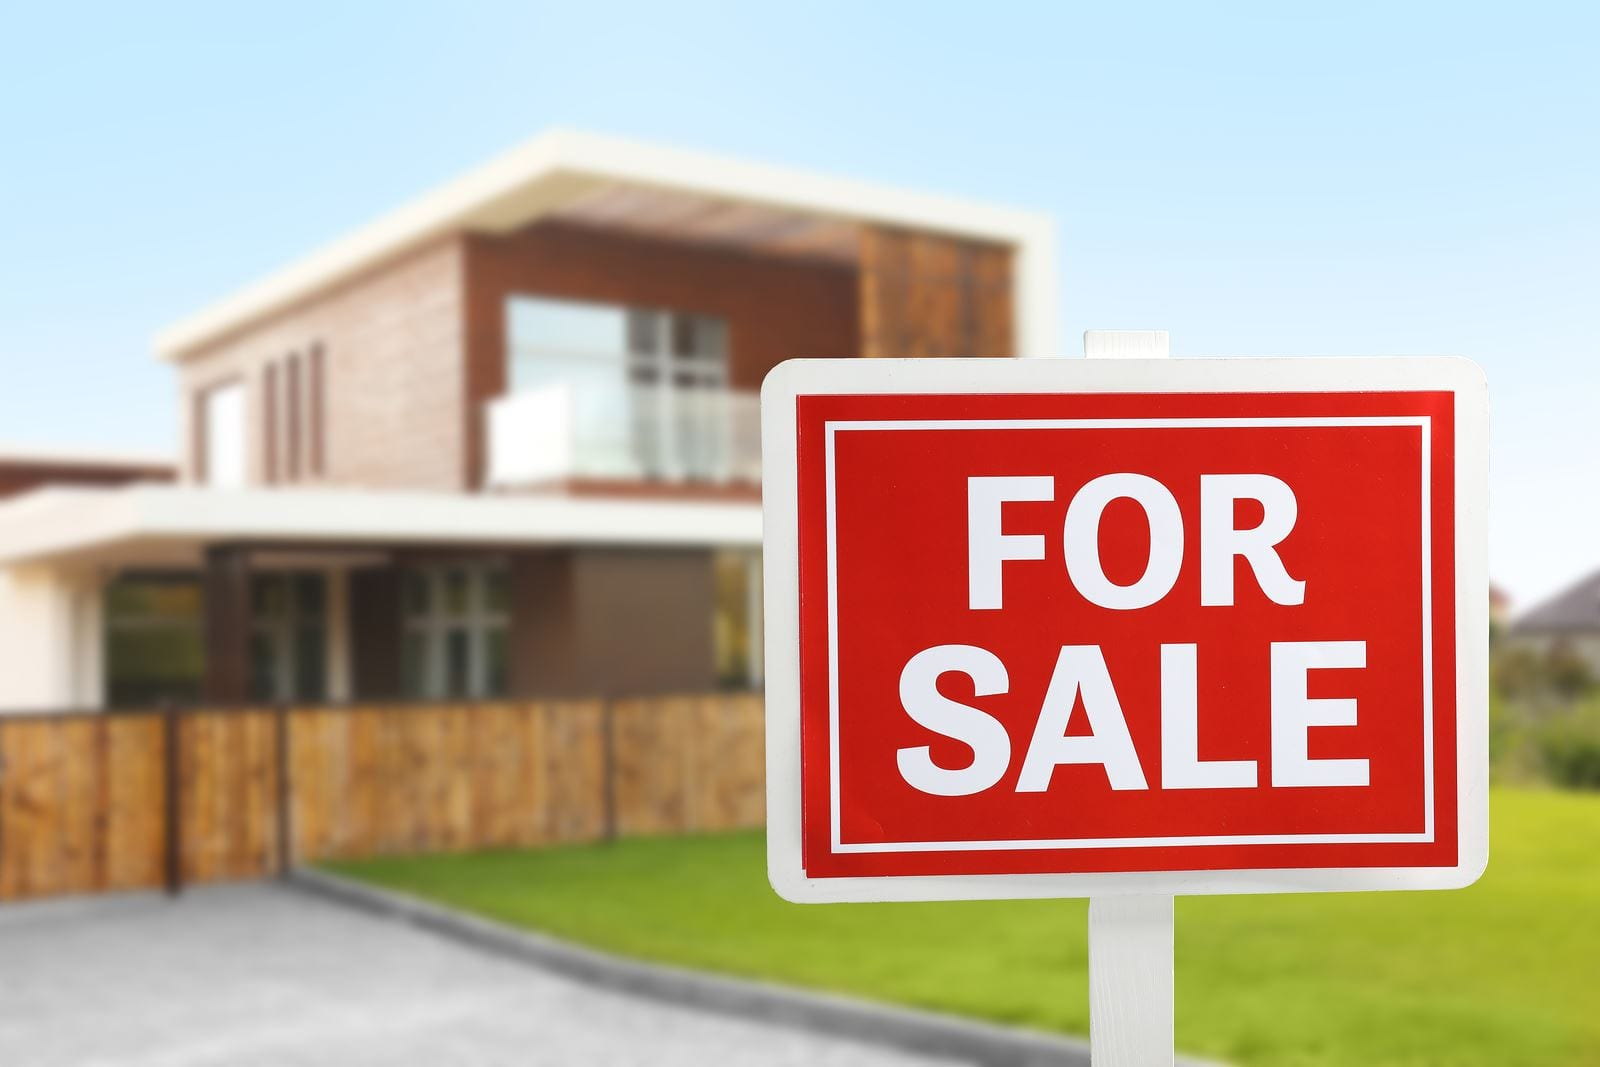 Find Investment Property for Sale Near Me | Mashvisor